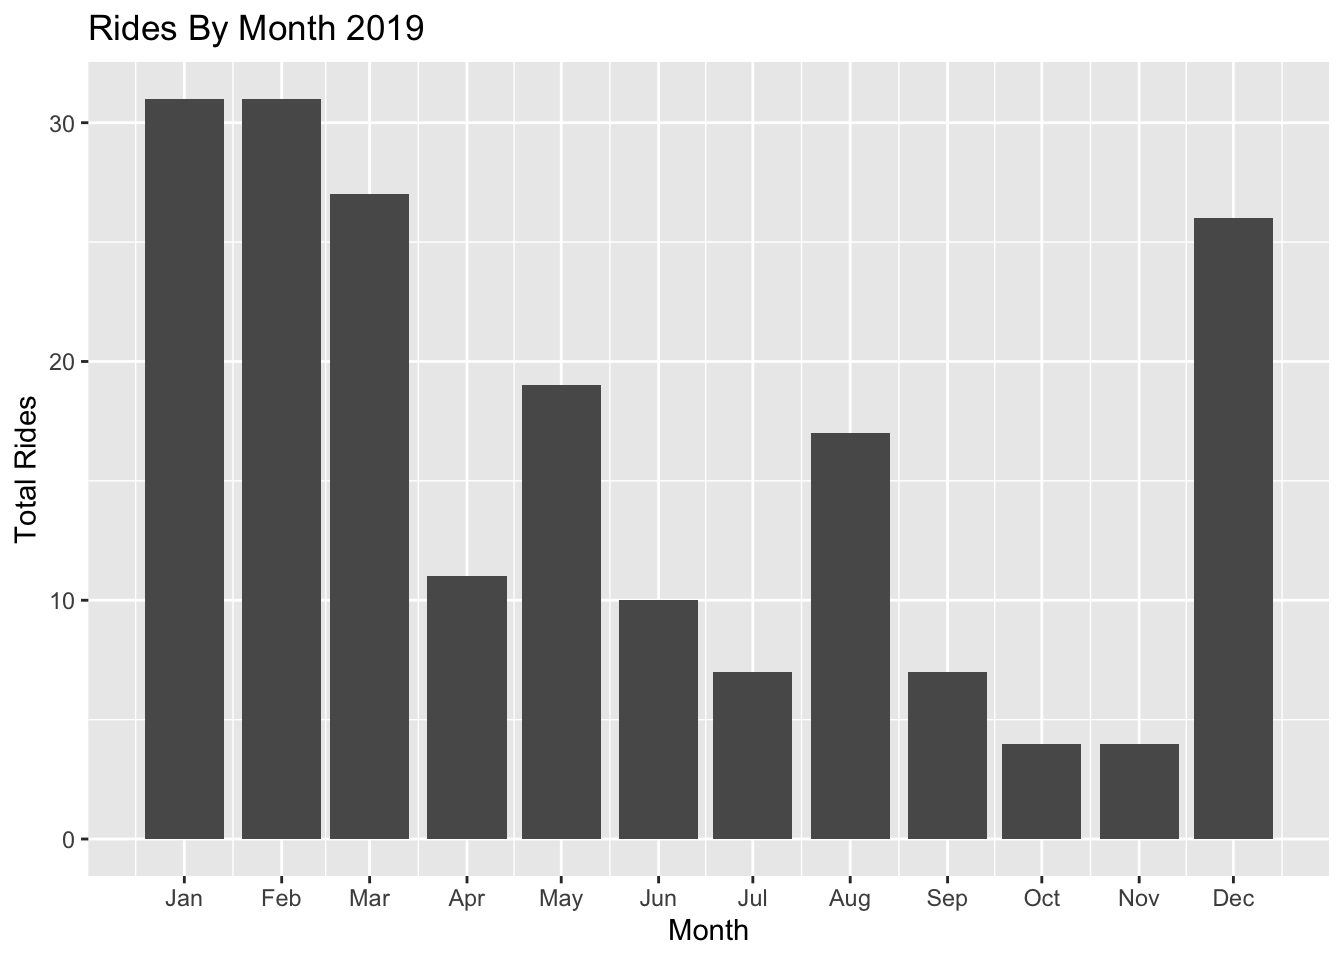 Rides by Month